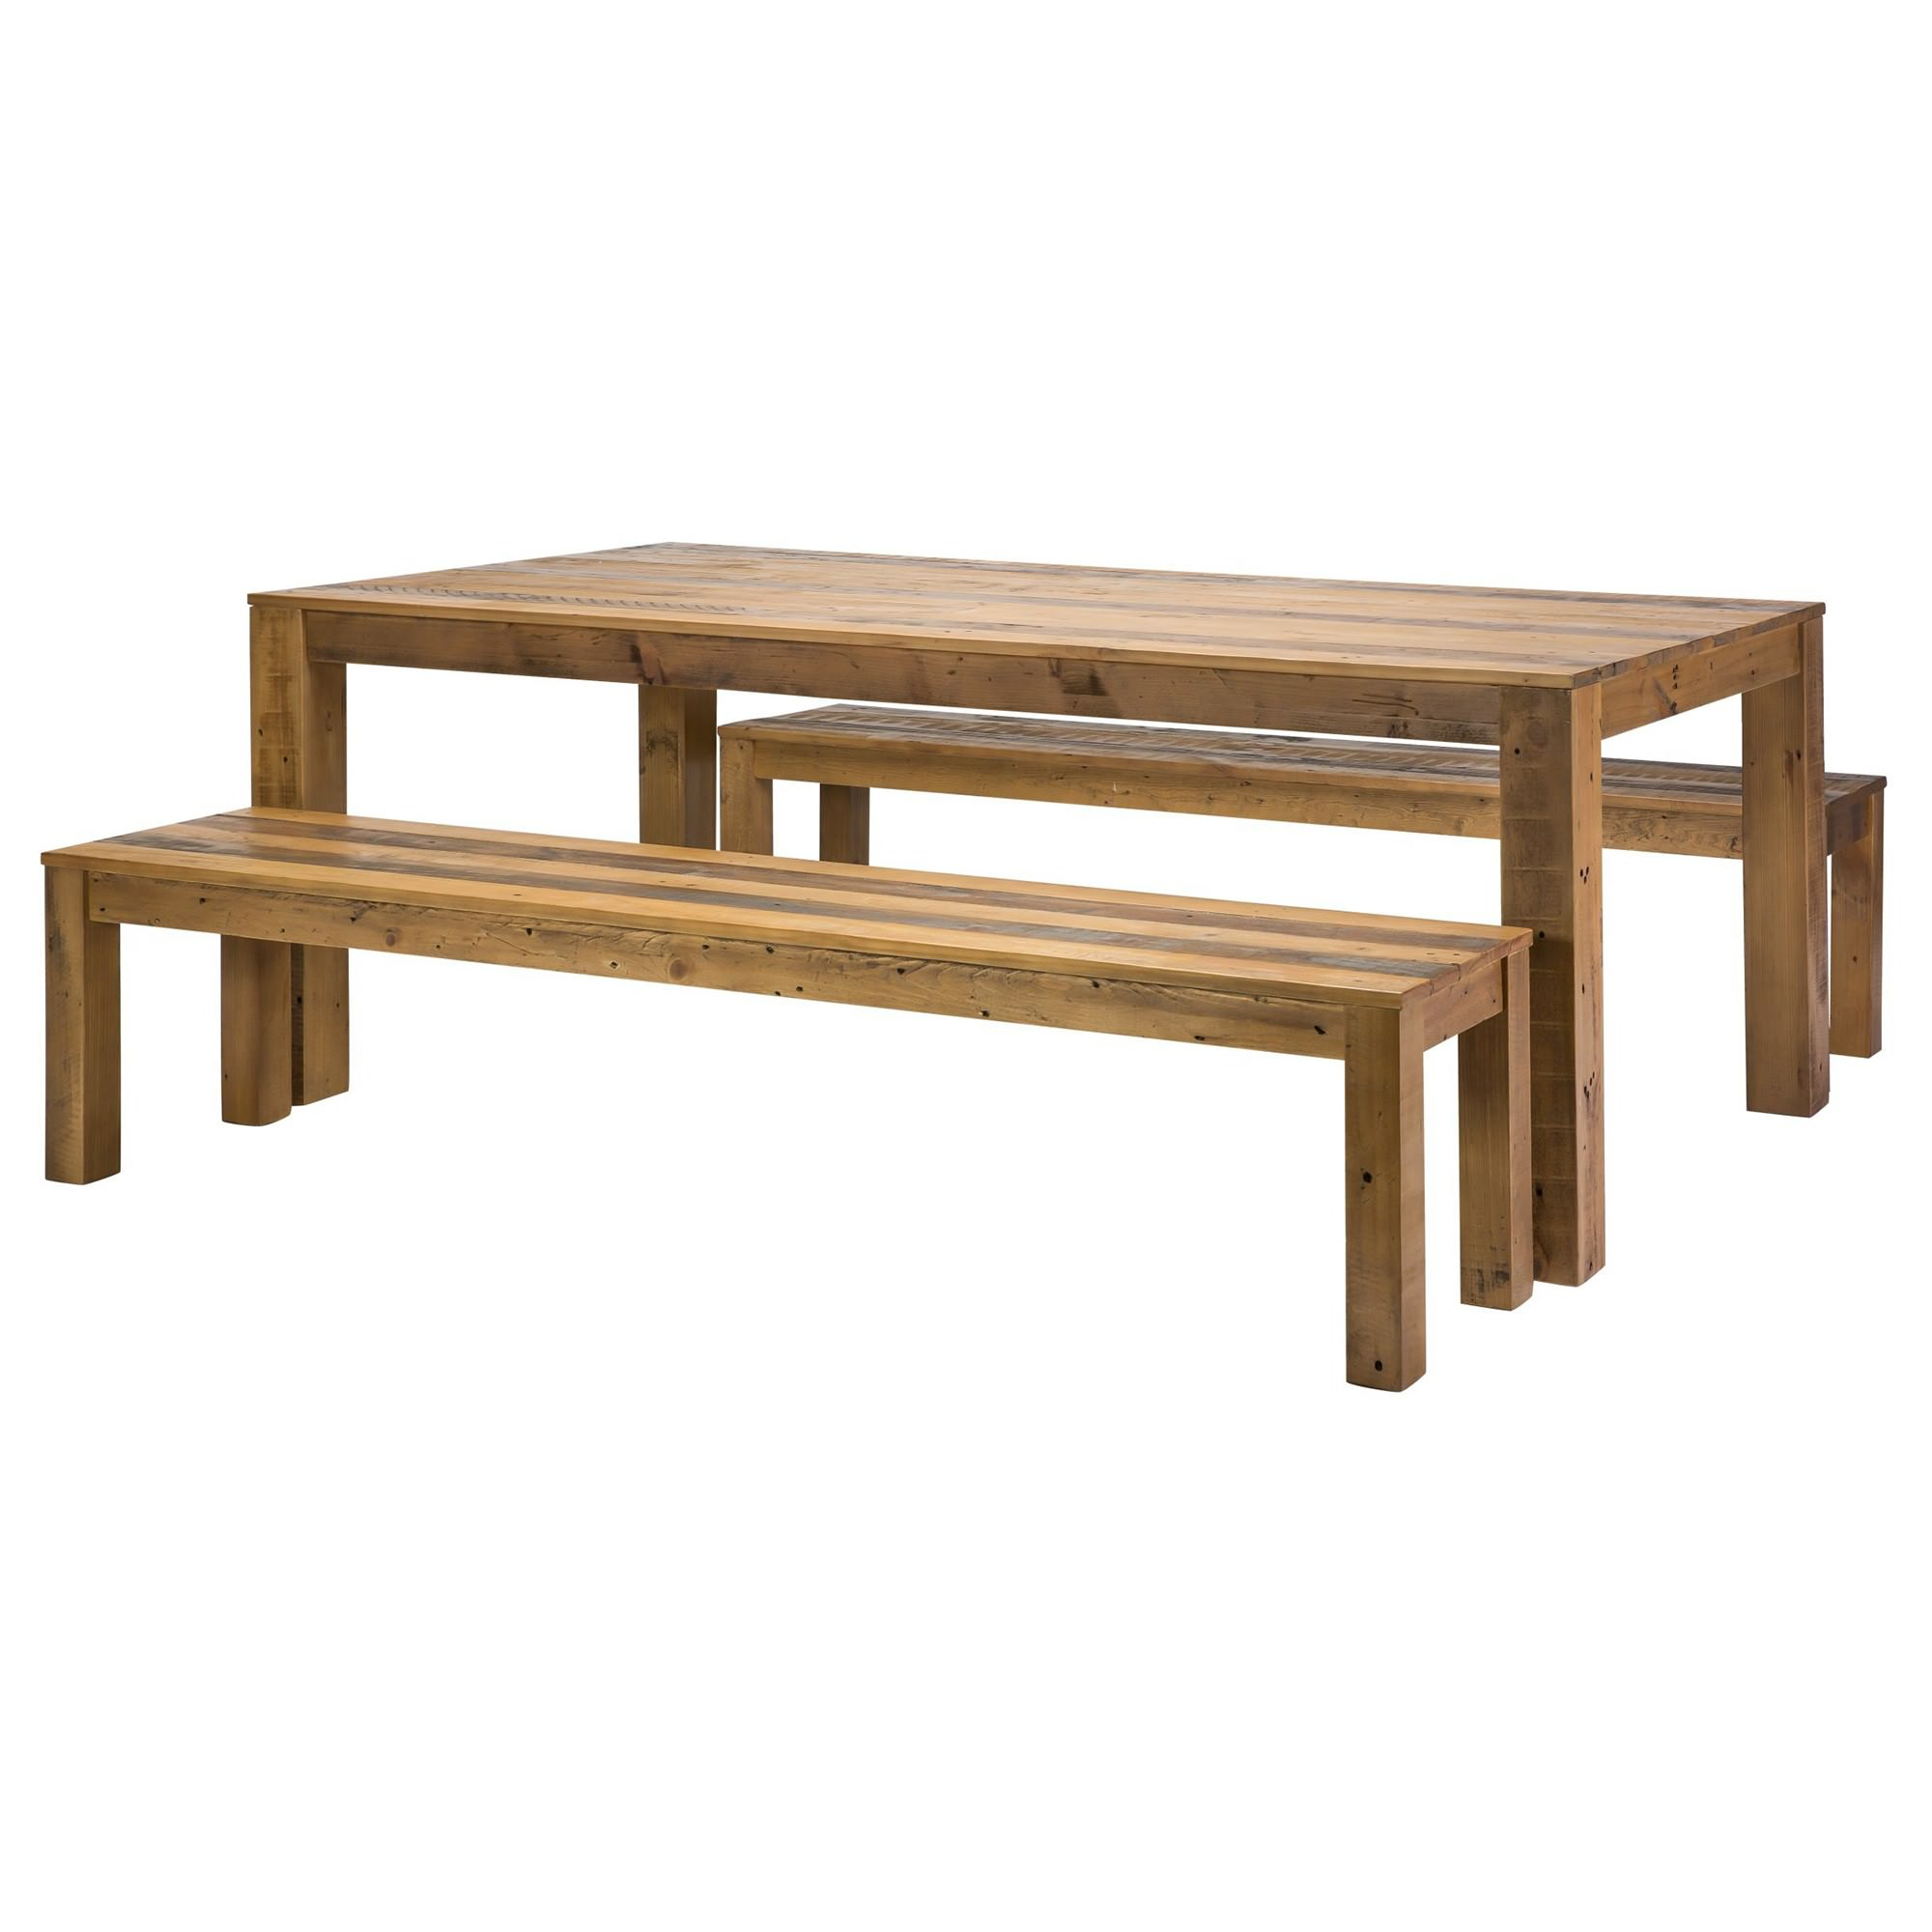 Ragana Reclaimed Timber Dining Table With Bench 3 Dining: Leland 3 Piece Recycled Timber Dining Table & Bench Set, 210cm